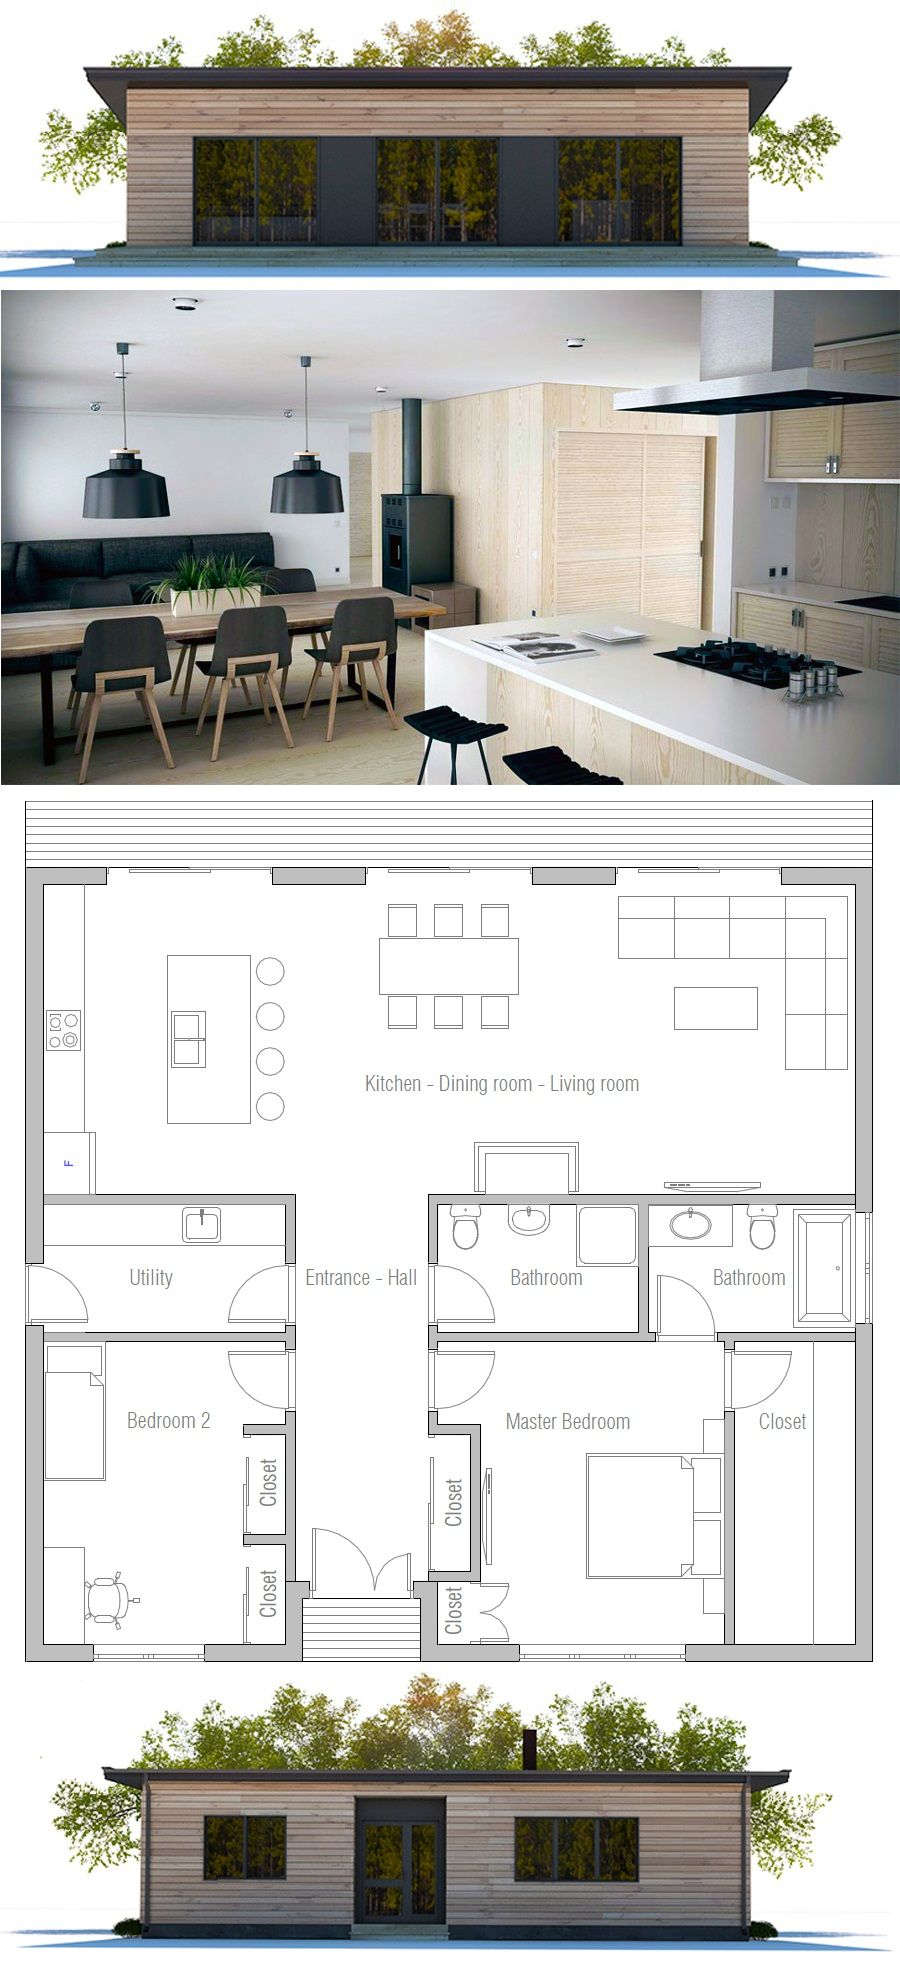 Two bedroom house plan   house   Pinterest   Bedrooms  House and     Two bedroom house plan